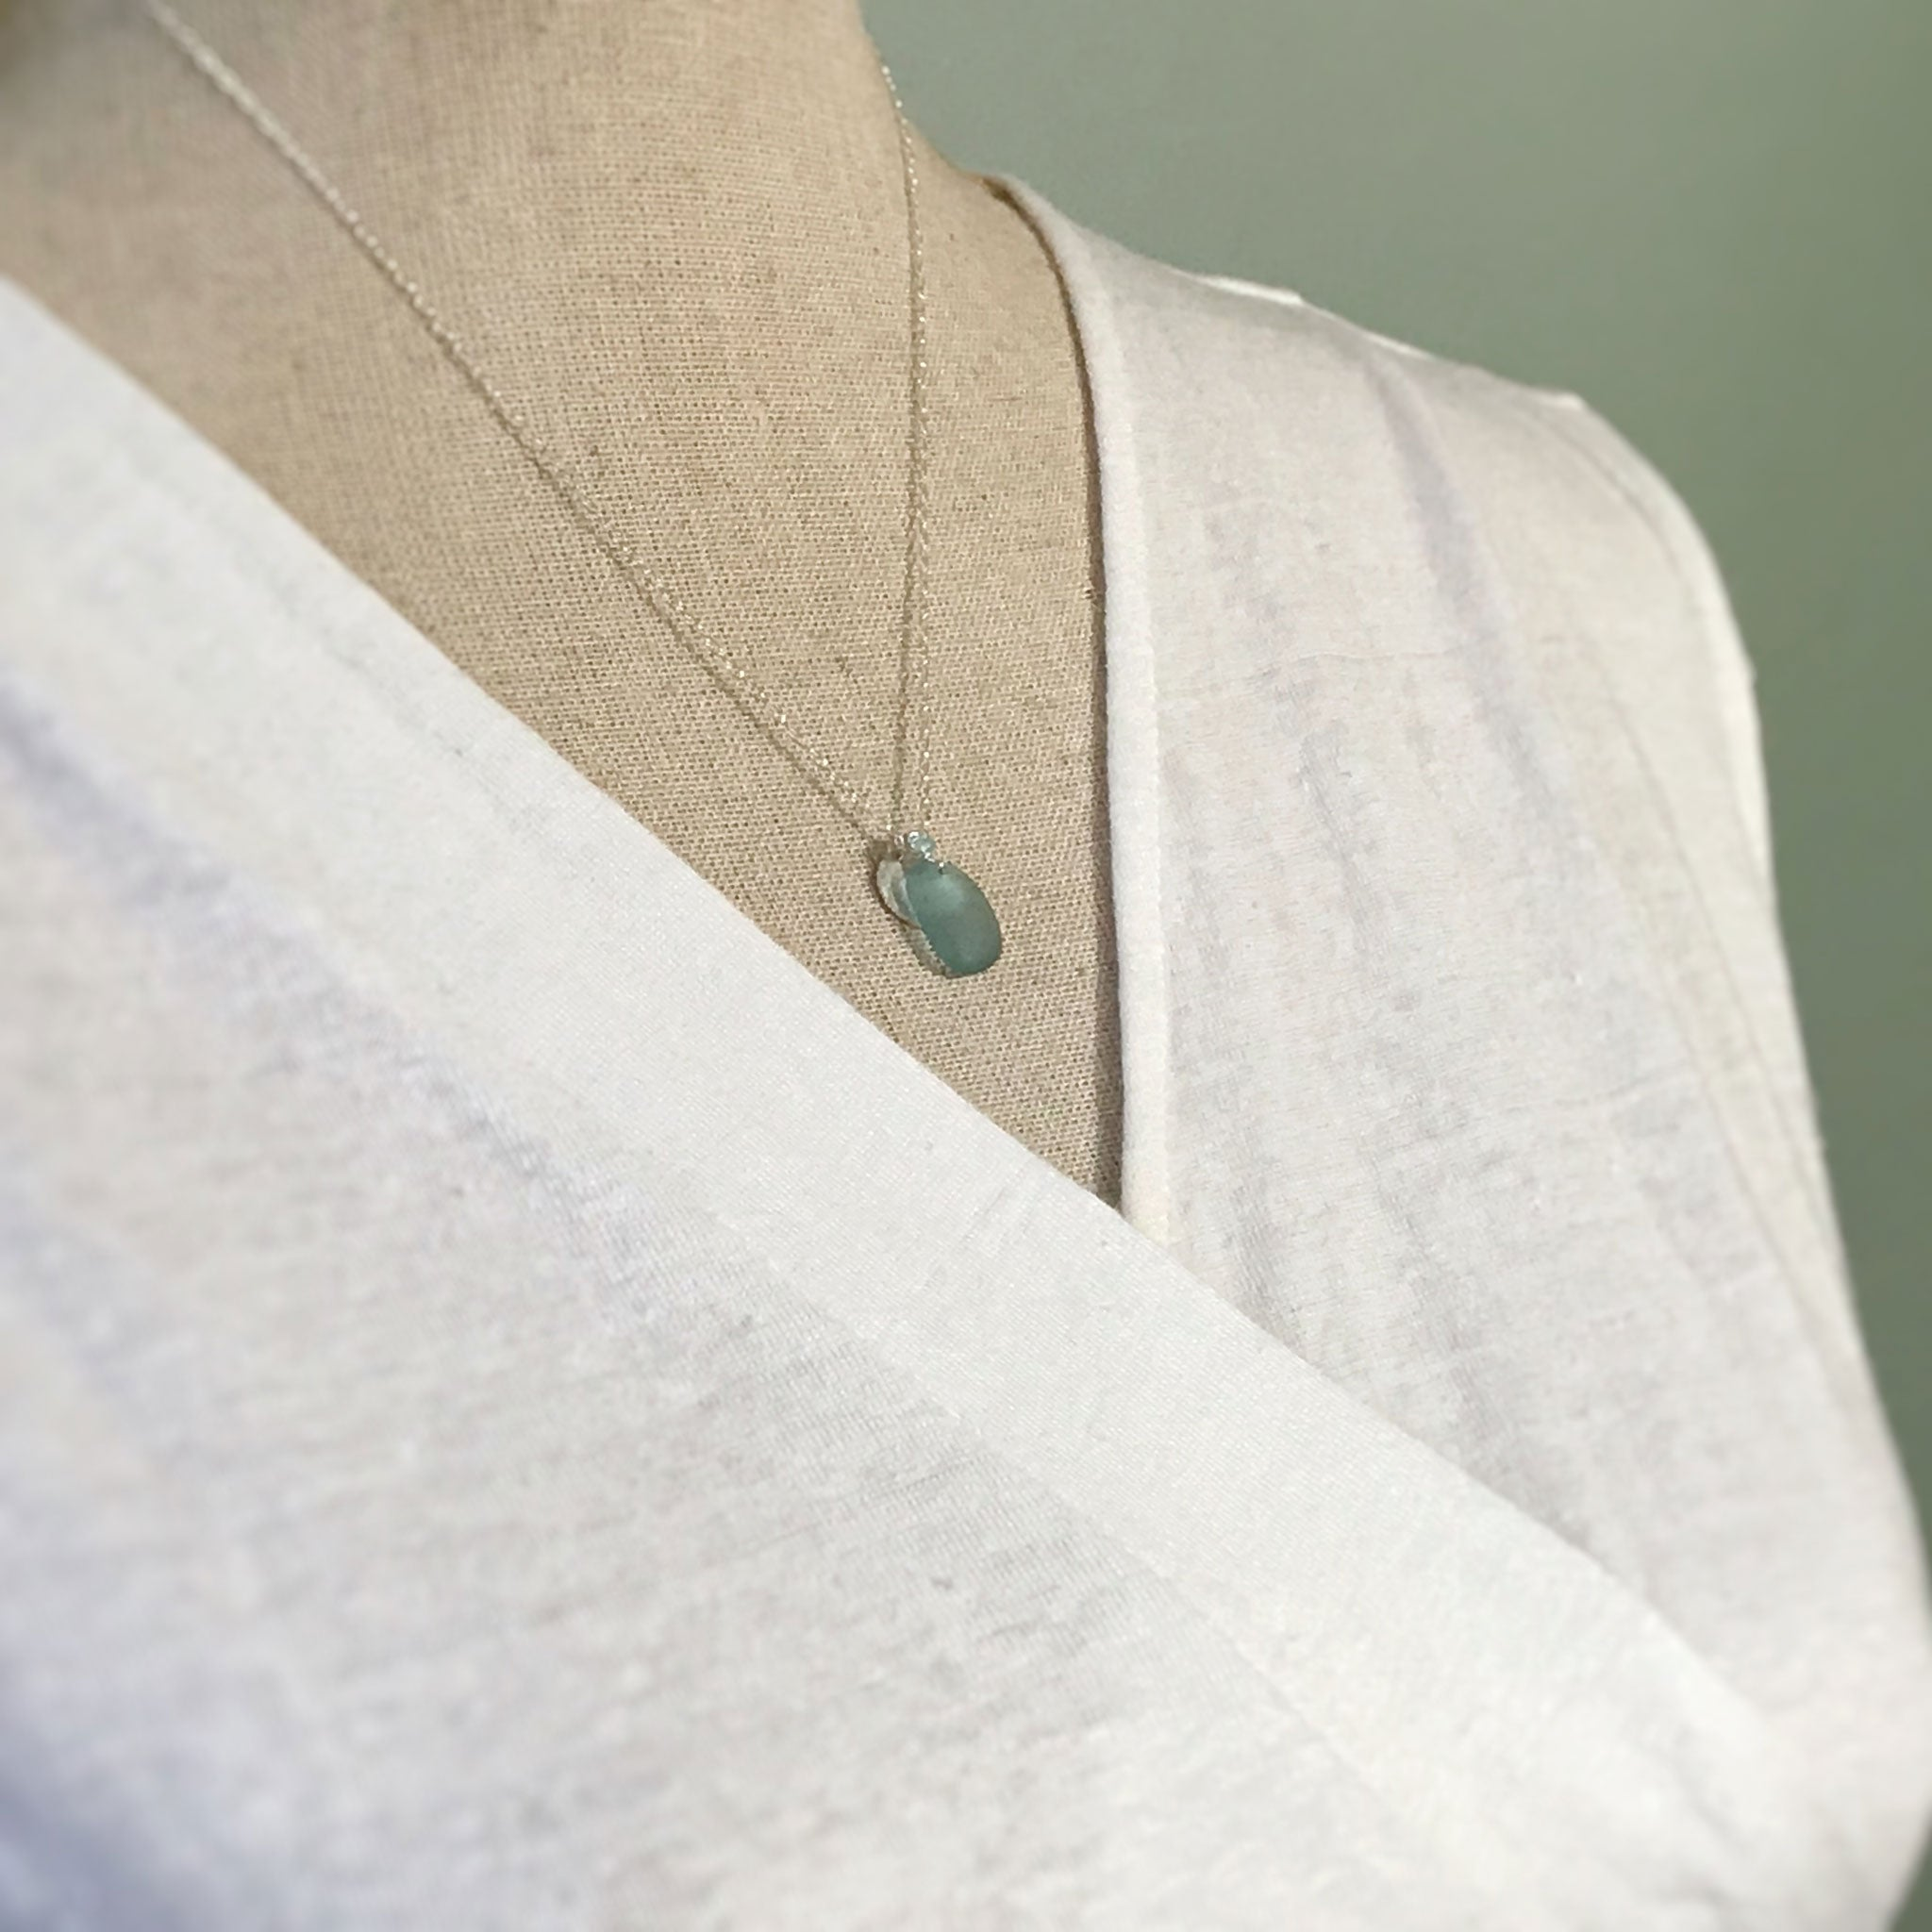 short silver necklace with aqua beach glass and disc charm kriket Broadhurst jewellery